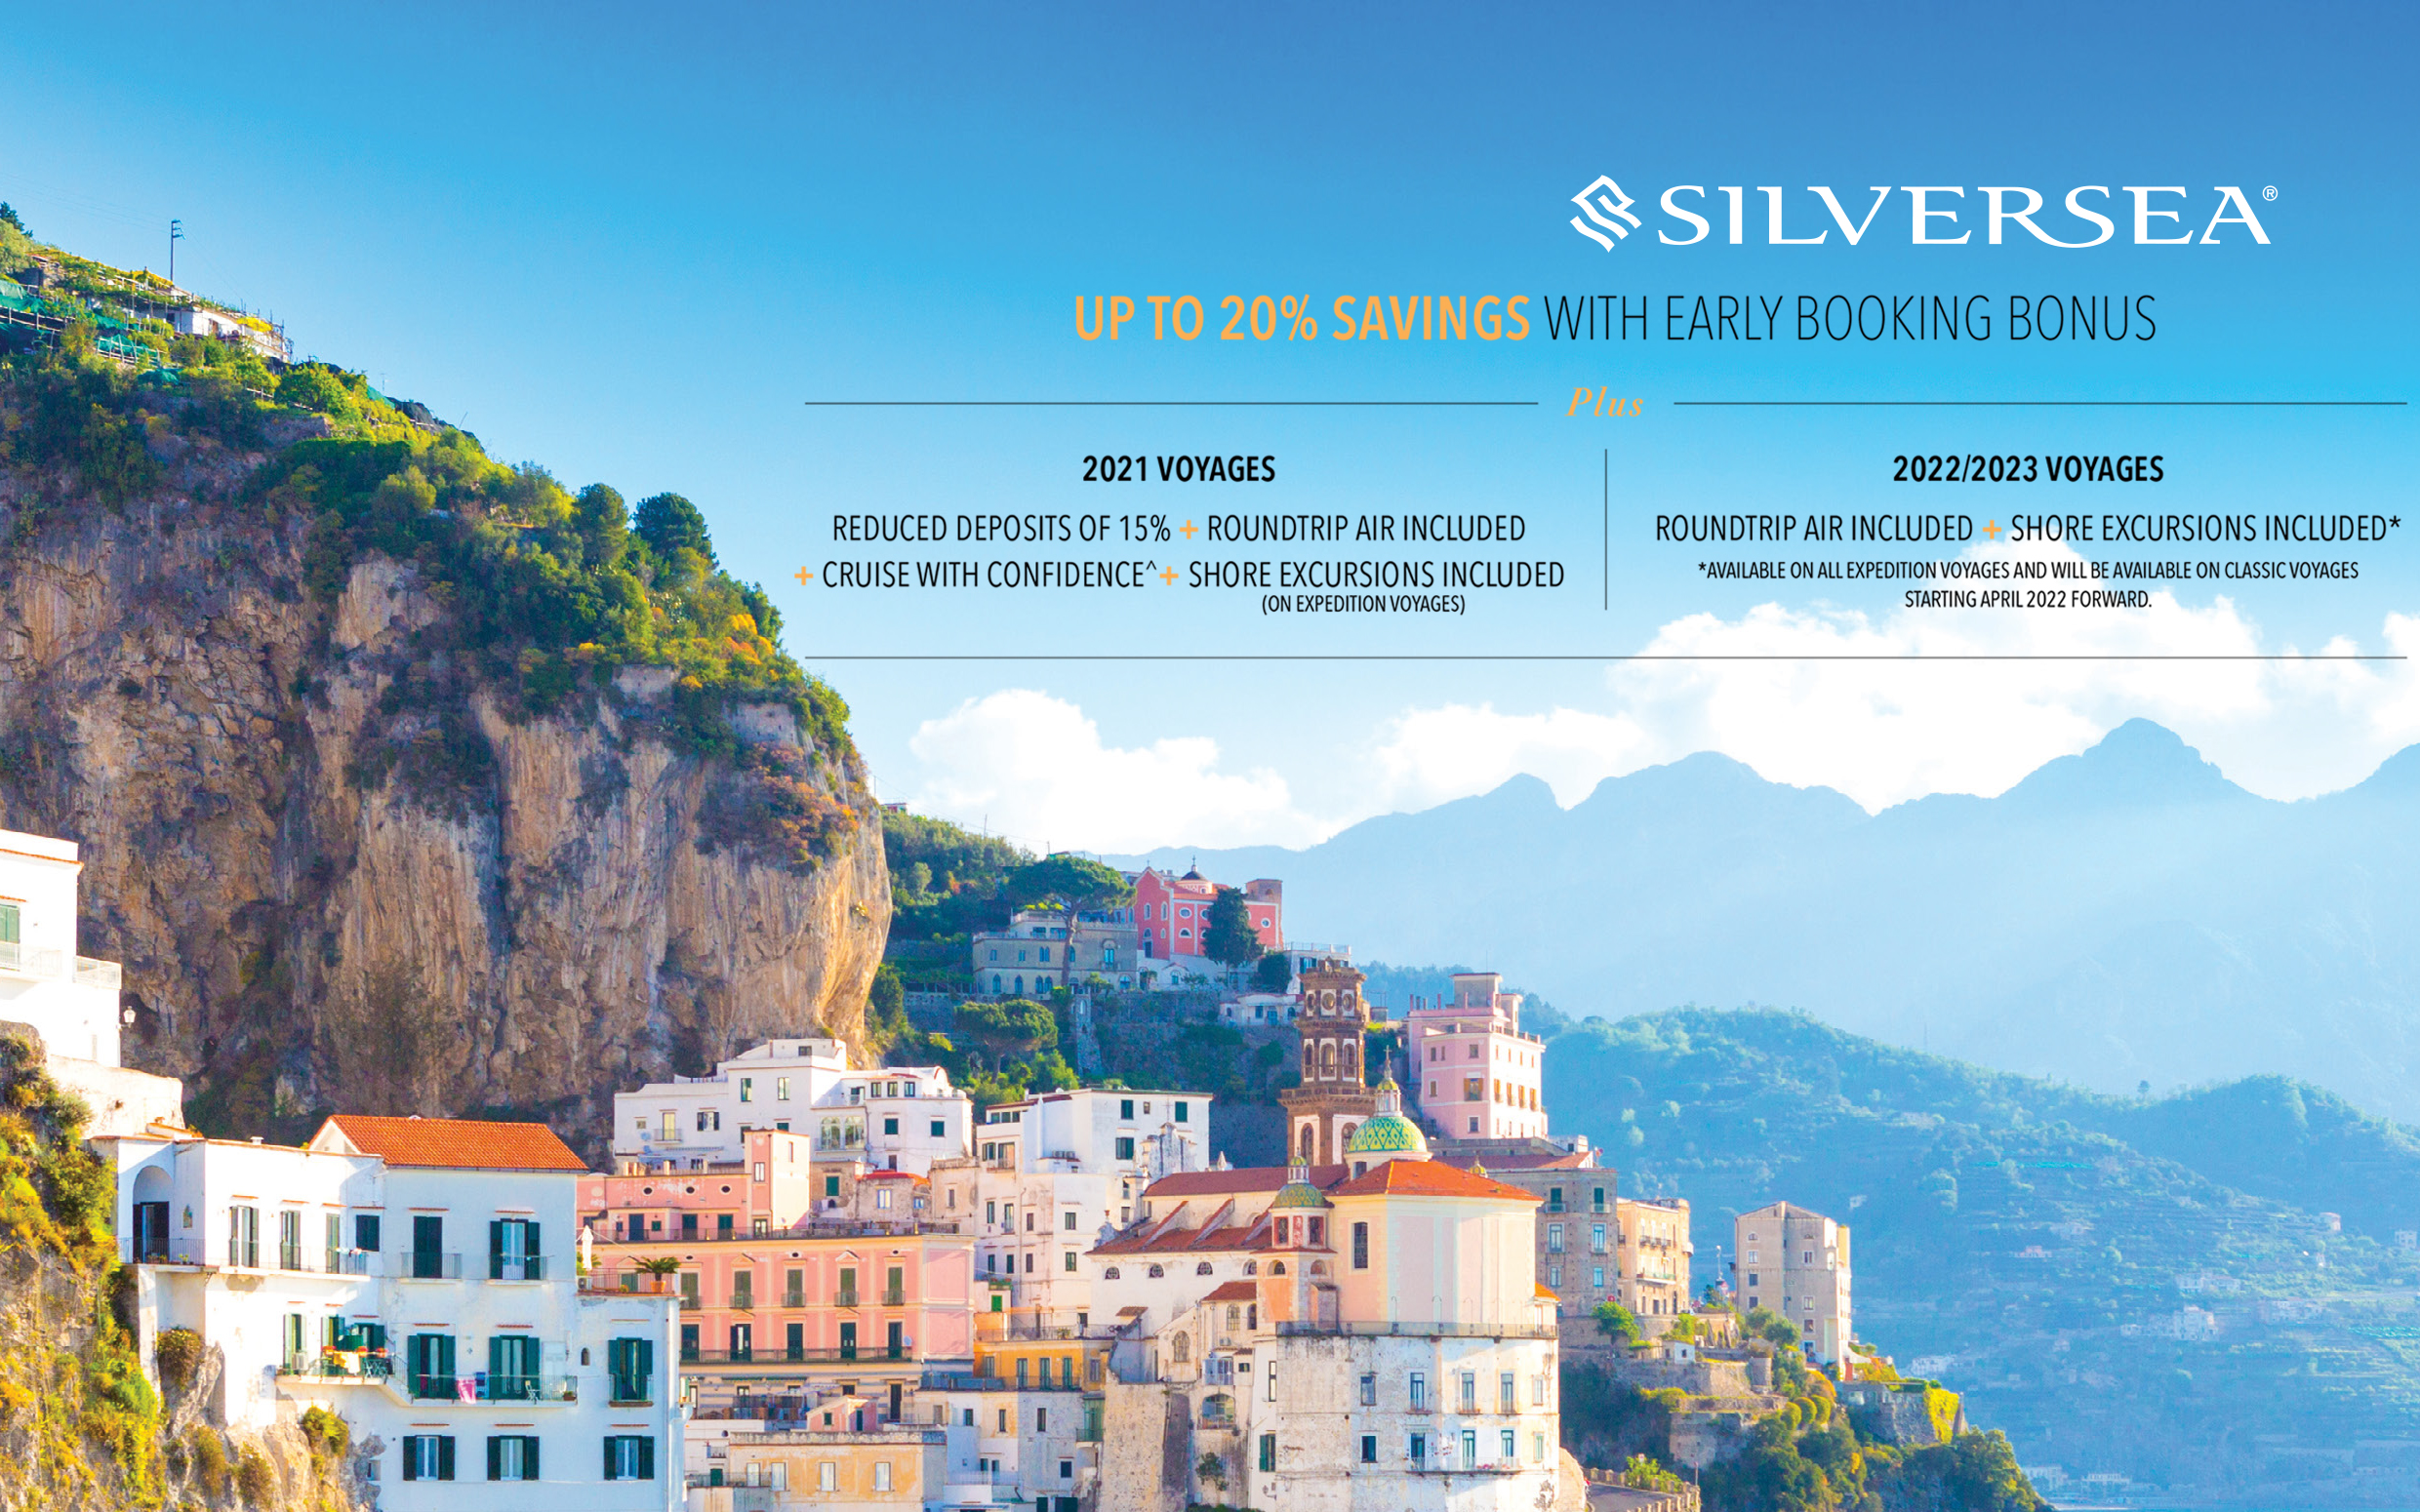 Silversea - Up to 20% Savings with Early Booking Bonus + Roundtrip Air* + Up to $500 Shipboard Credit